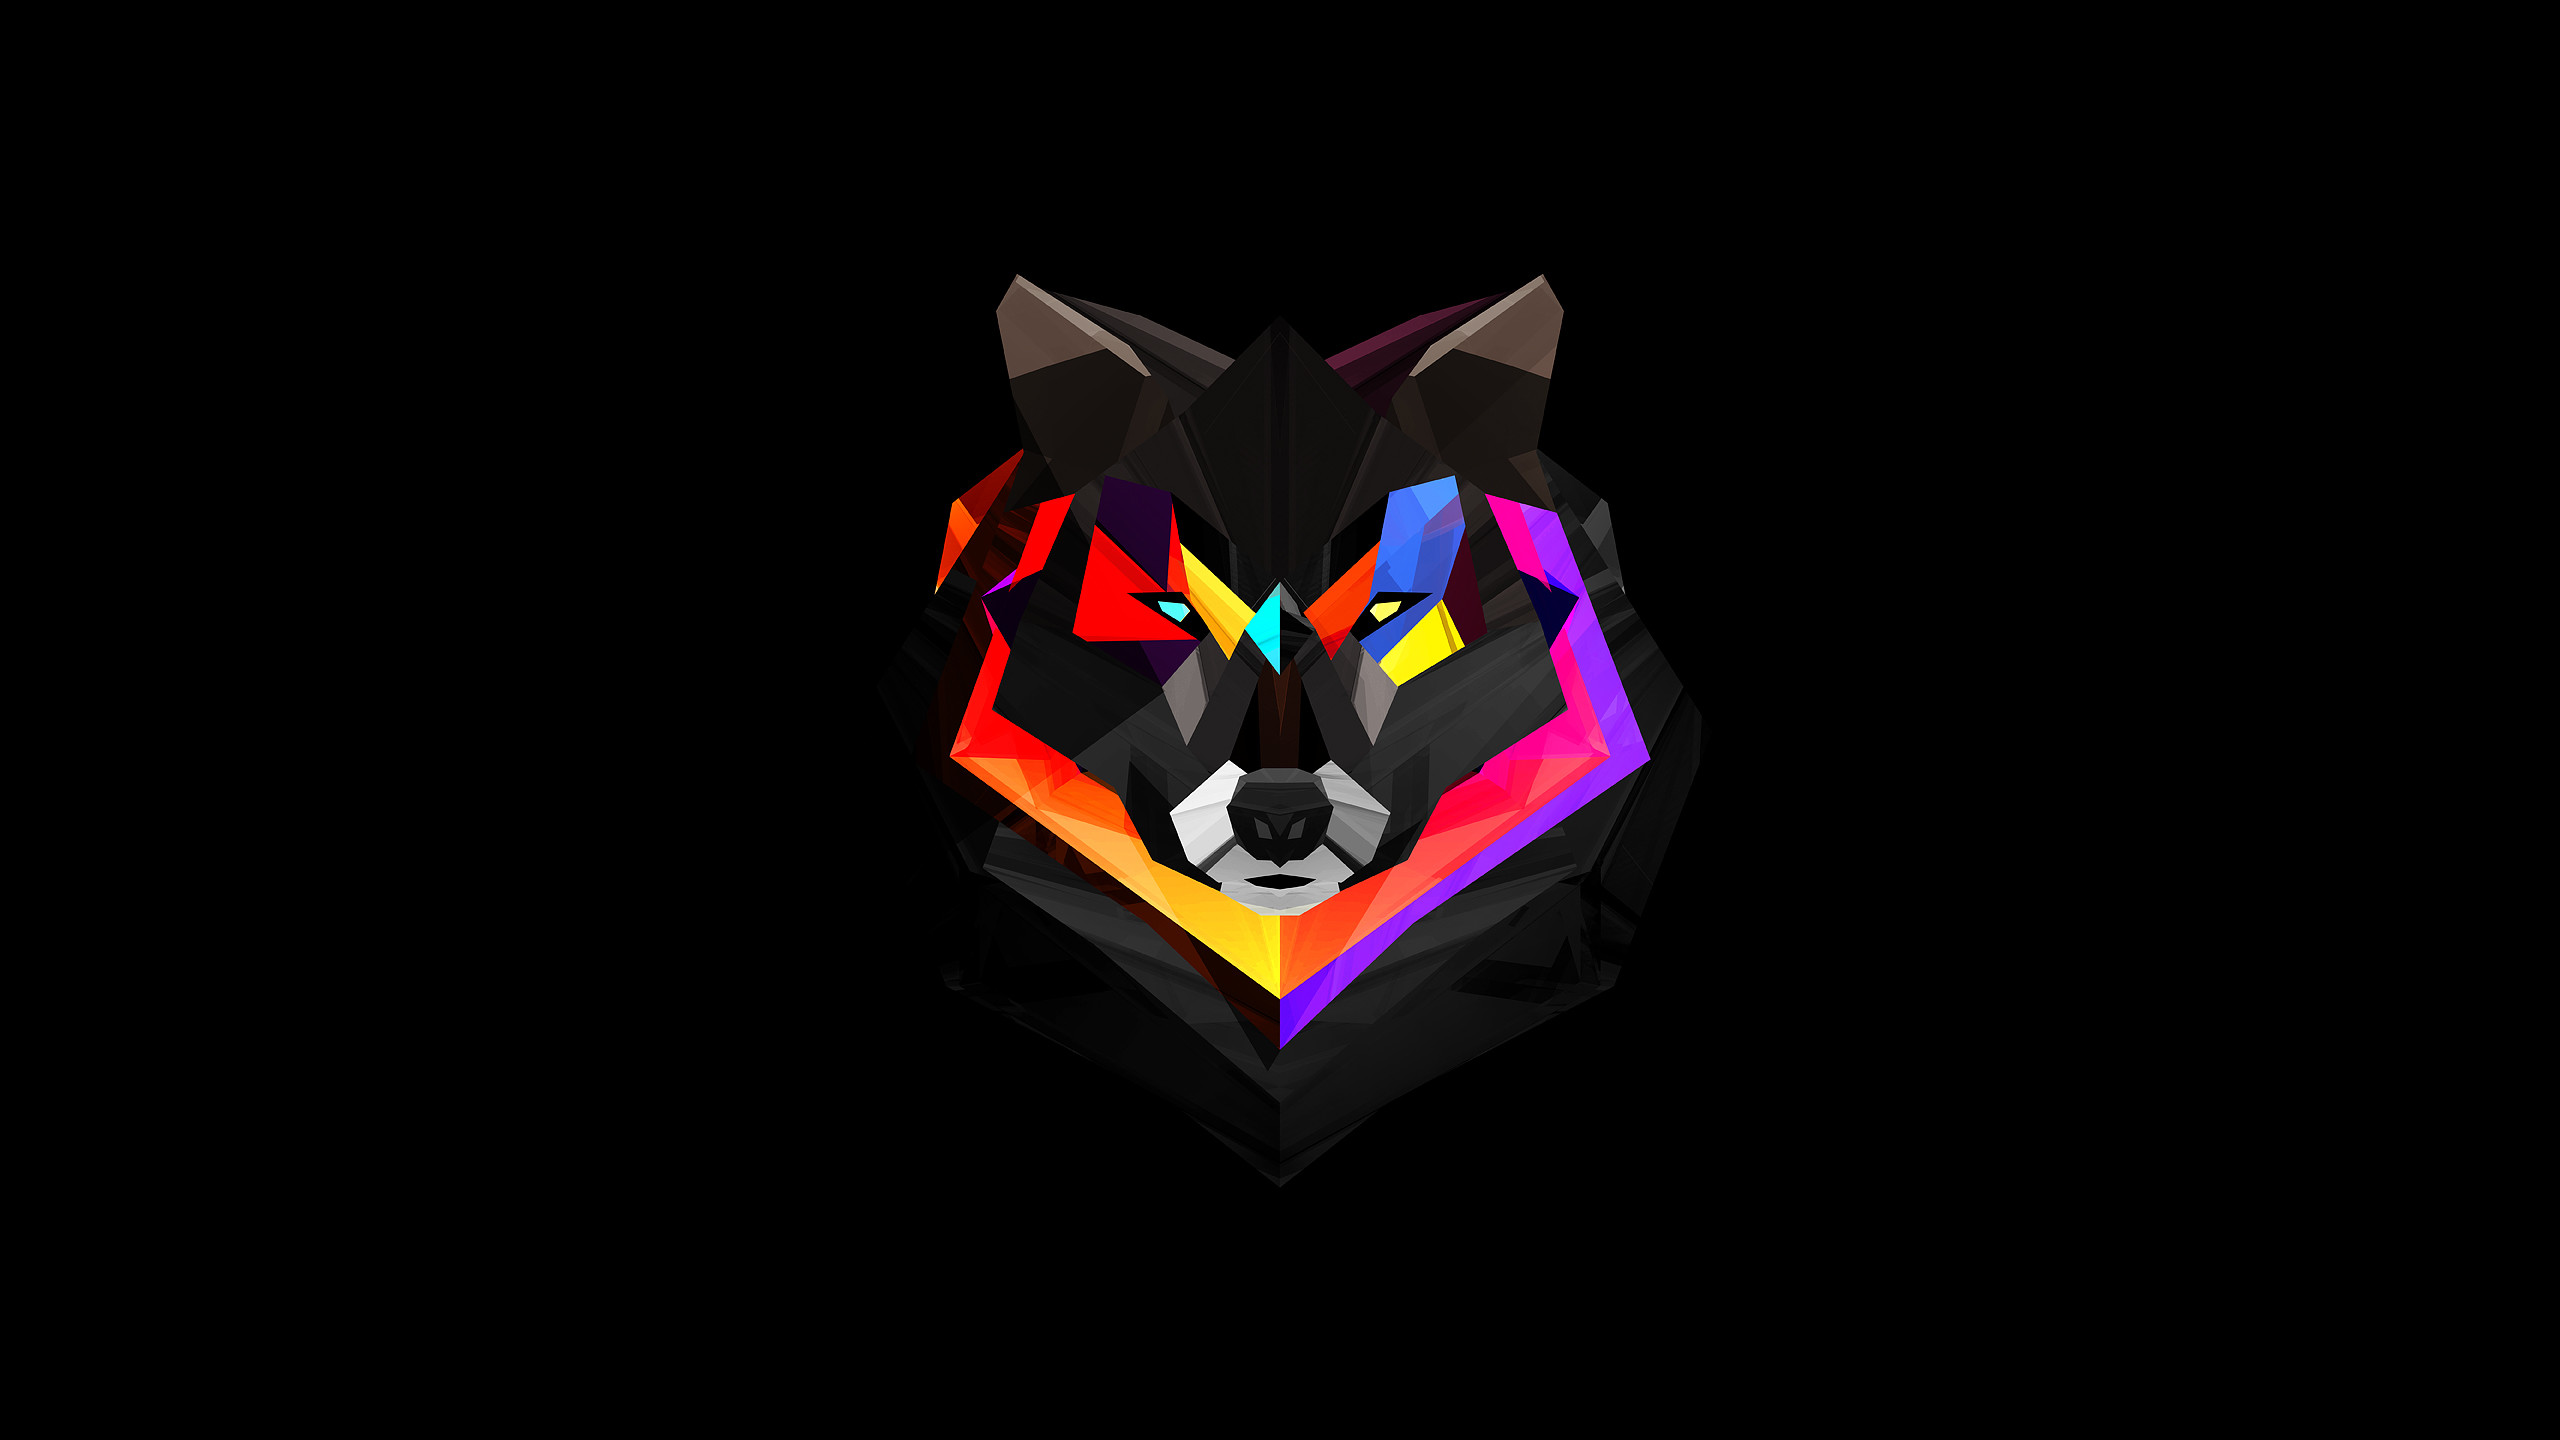 Cool Wolf Wallpaper 61 Images